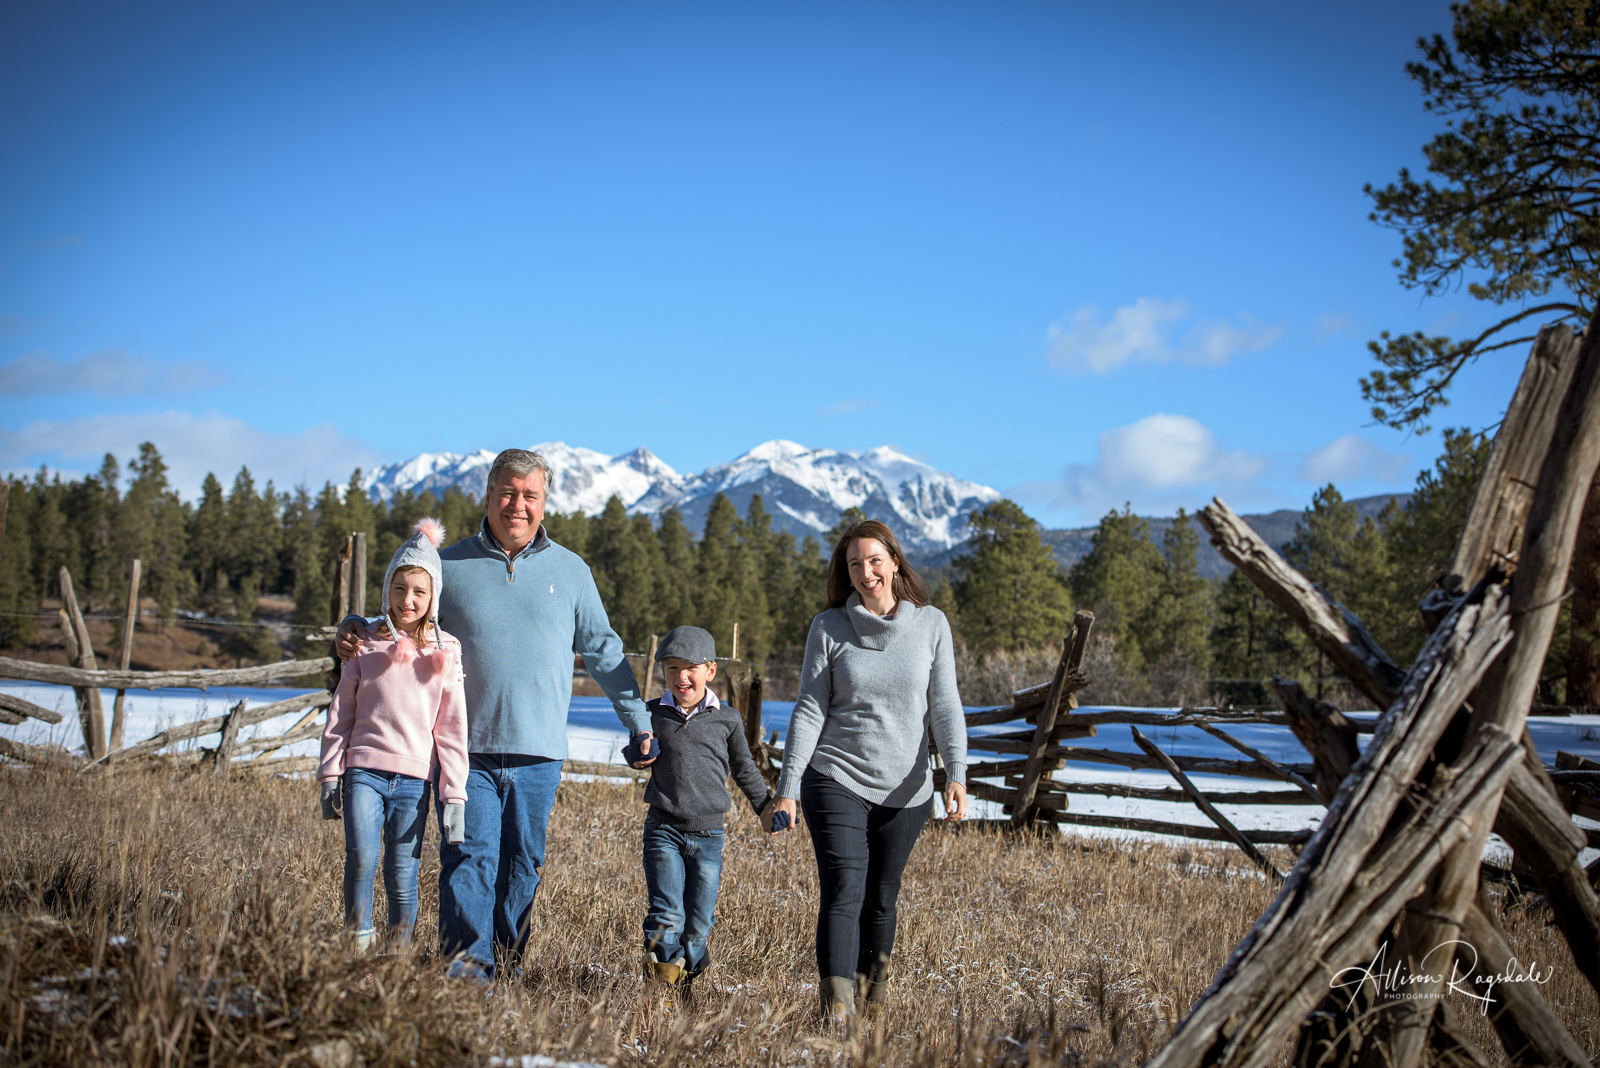 Valdez Family Pictures in Durango Colorado